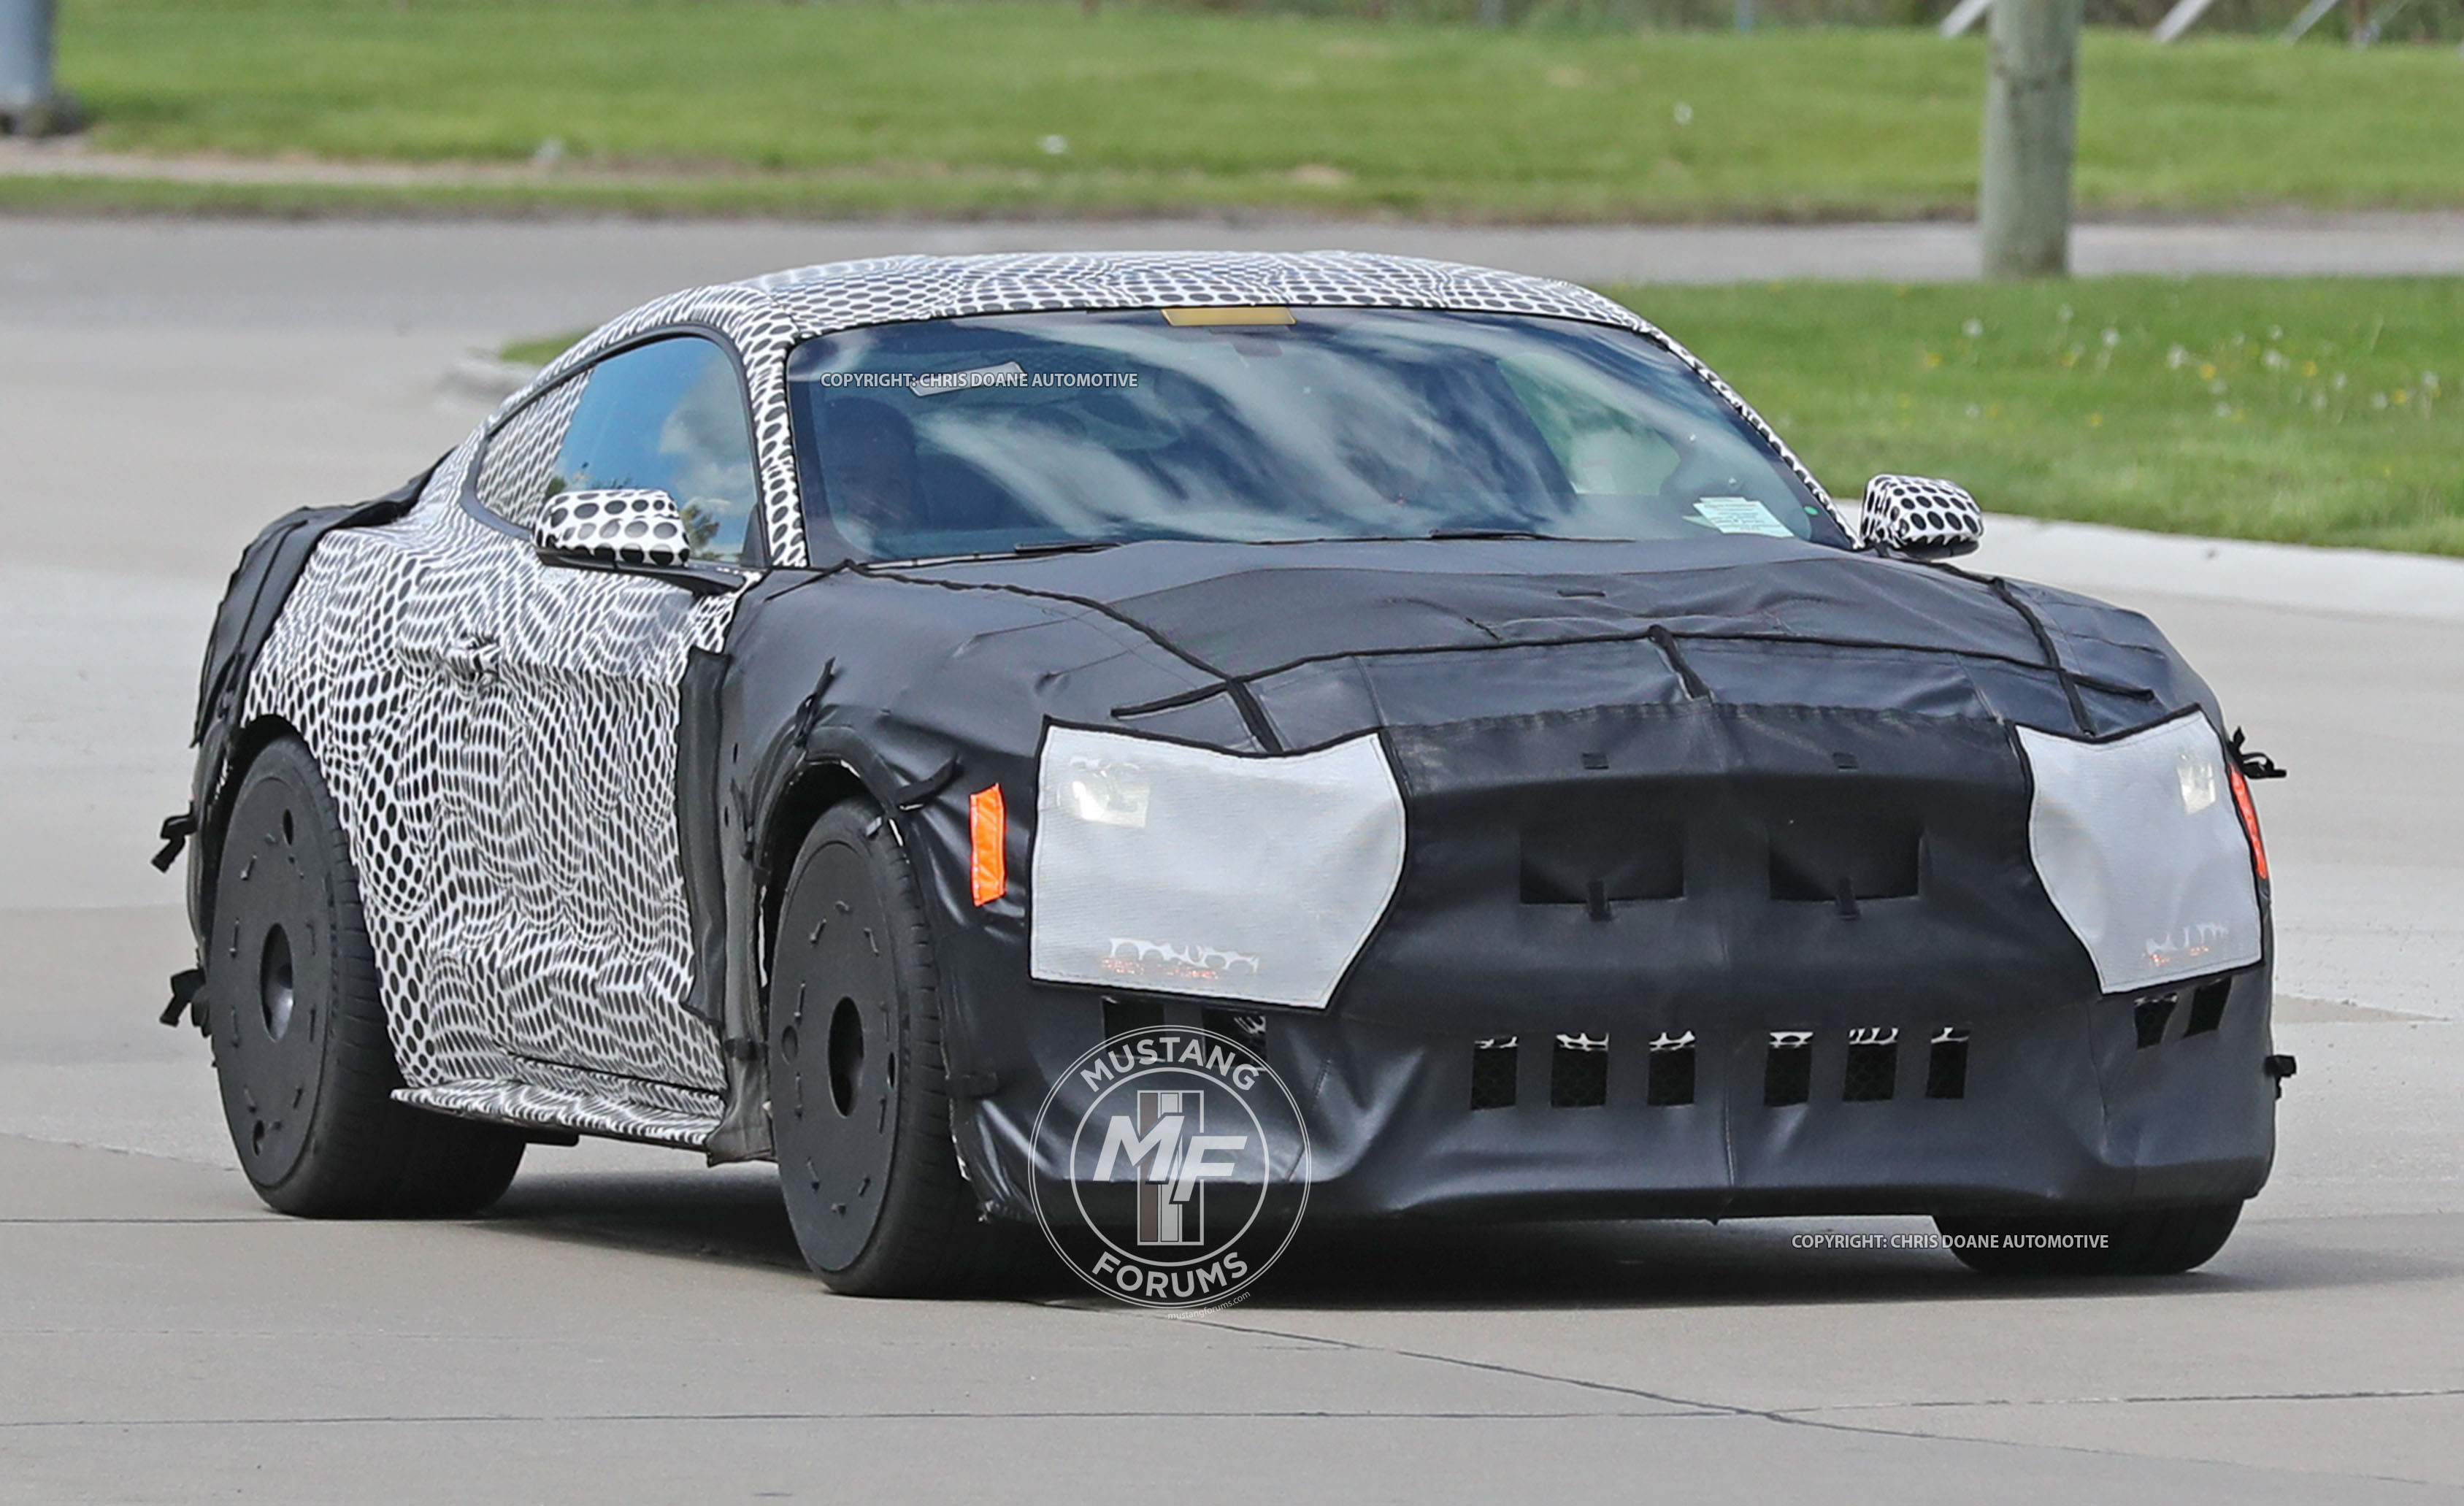 2019 Ford Mustang Gt500 Full Prototype Caught In The Wild Mustangforums